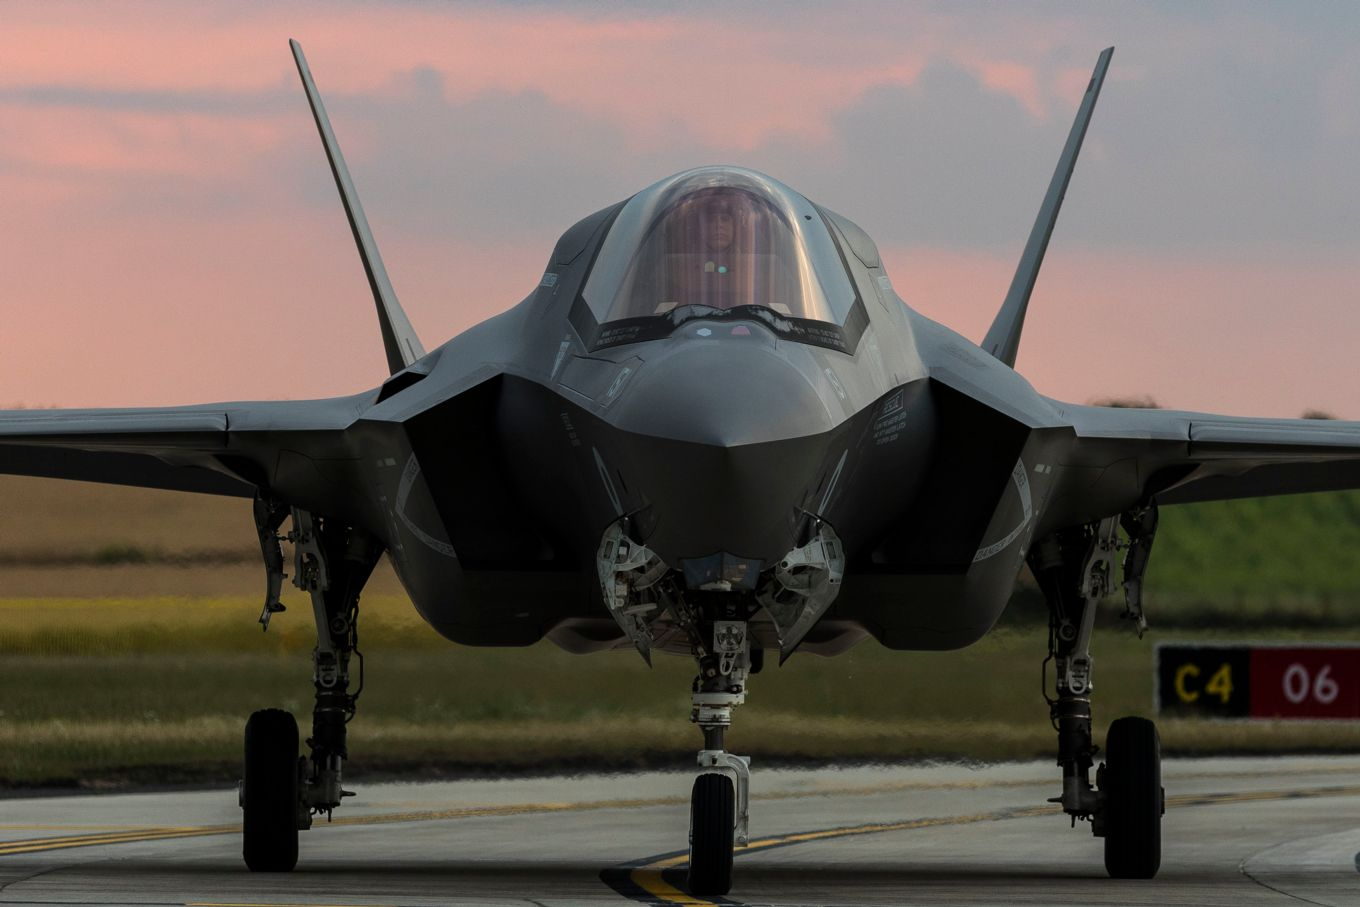 F-35 Lighting jets from 207 Squadron arrive back to the UK at RAF Marham